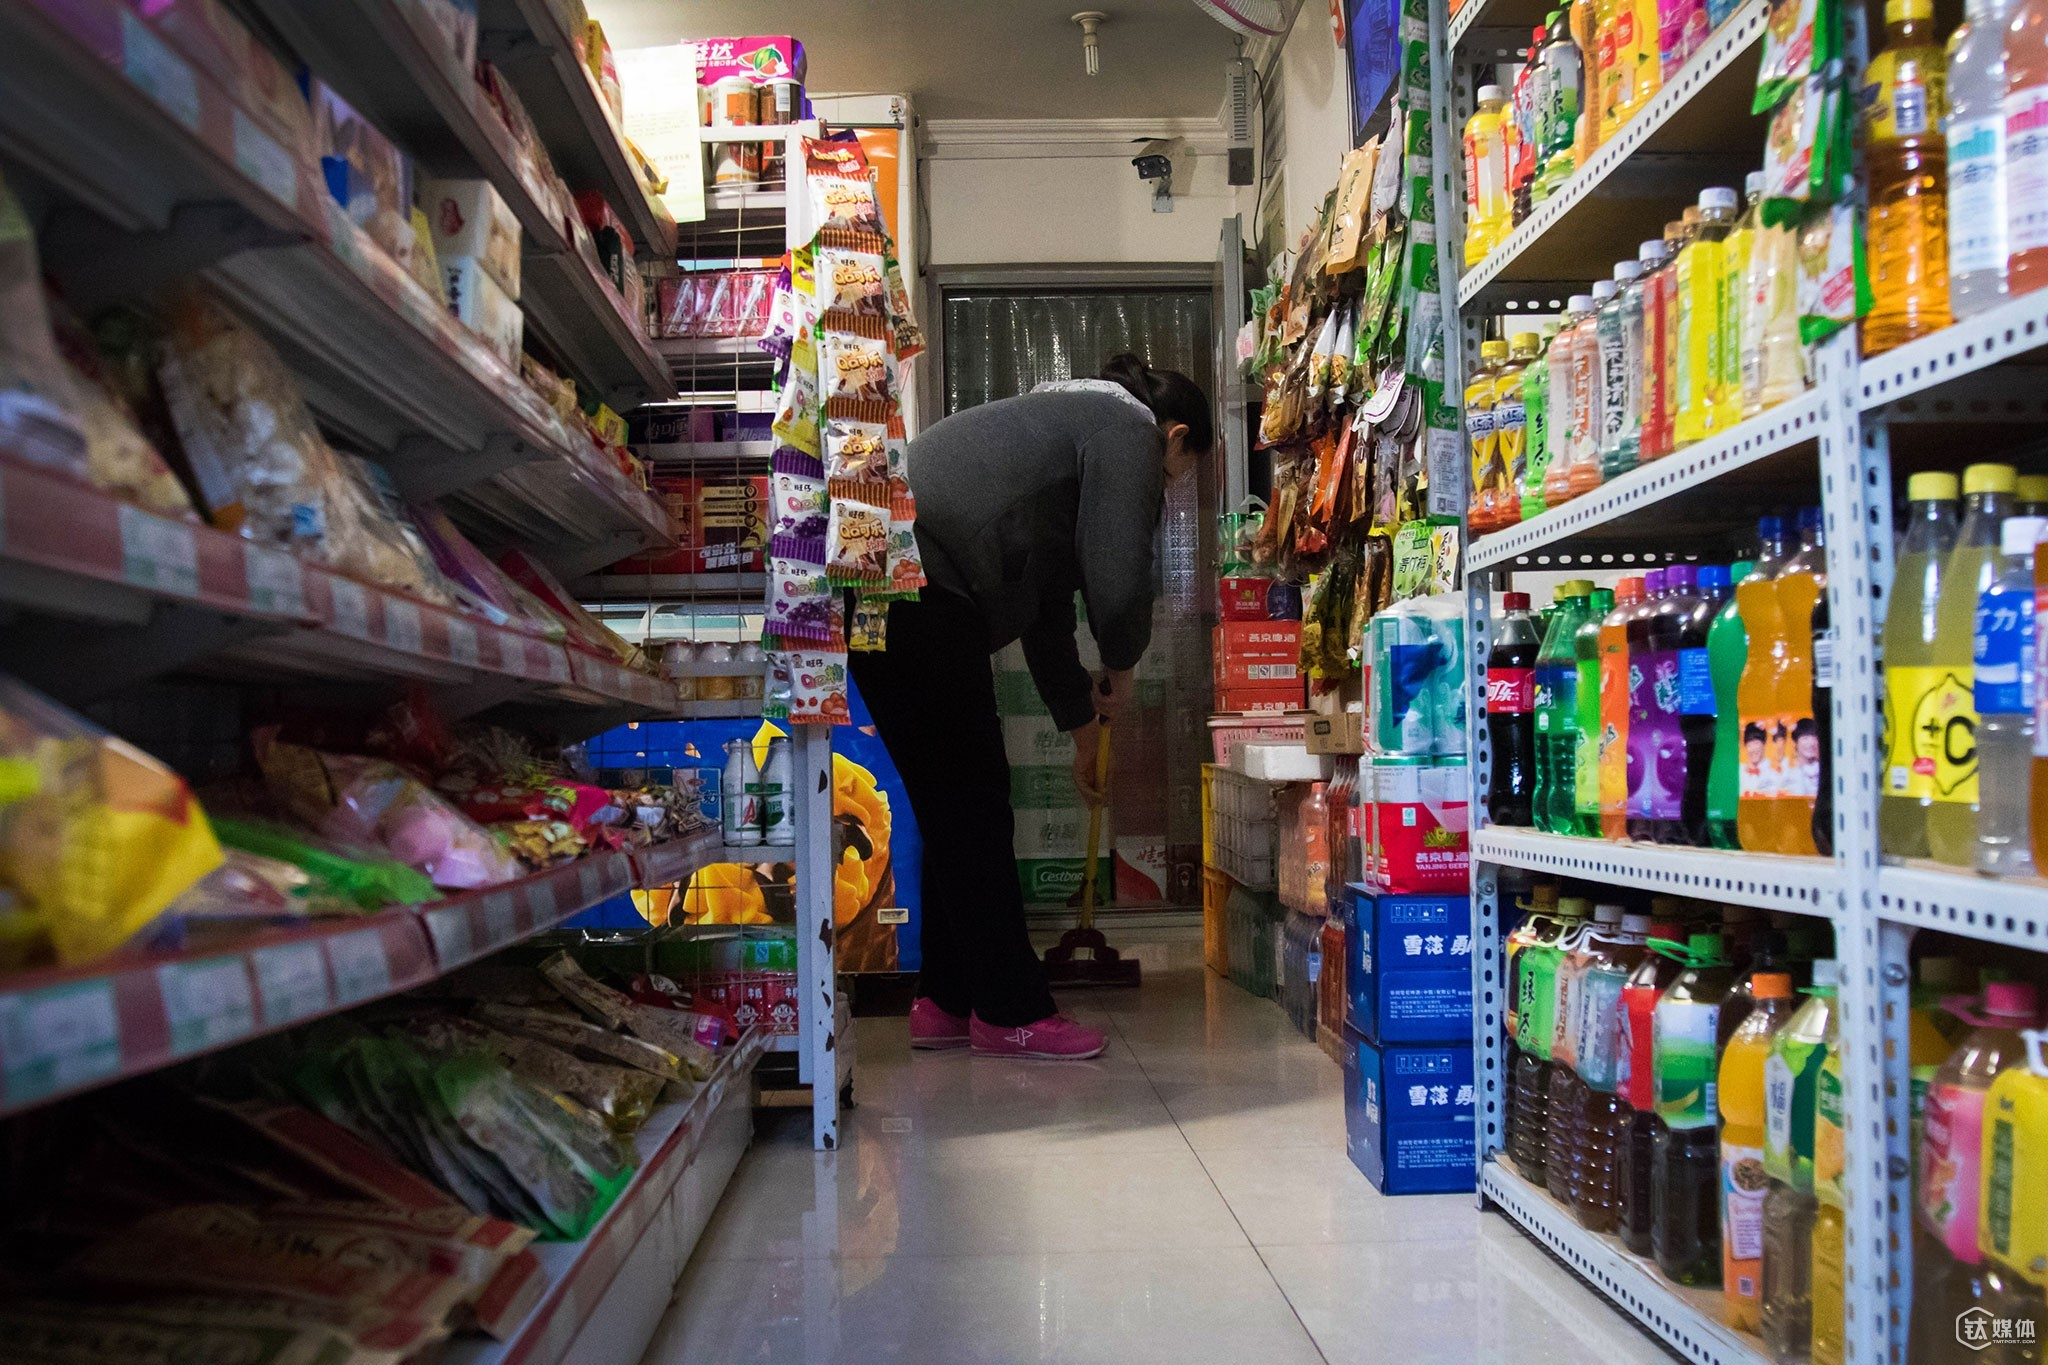 09:30, January 15th, 2016. Zhang Hui (pseudonym), owner of the convenience store, was cleaning the store. Mrs. Zhang and her husband Tang Yuan (pseudonym) changed their 70-square-meter apartment a little bit and made room for the convenience store, which sells mainly beverages, snacks, alcohols, cigarettes and other daily necessities.